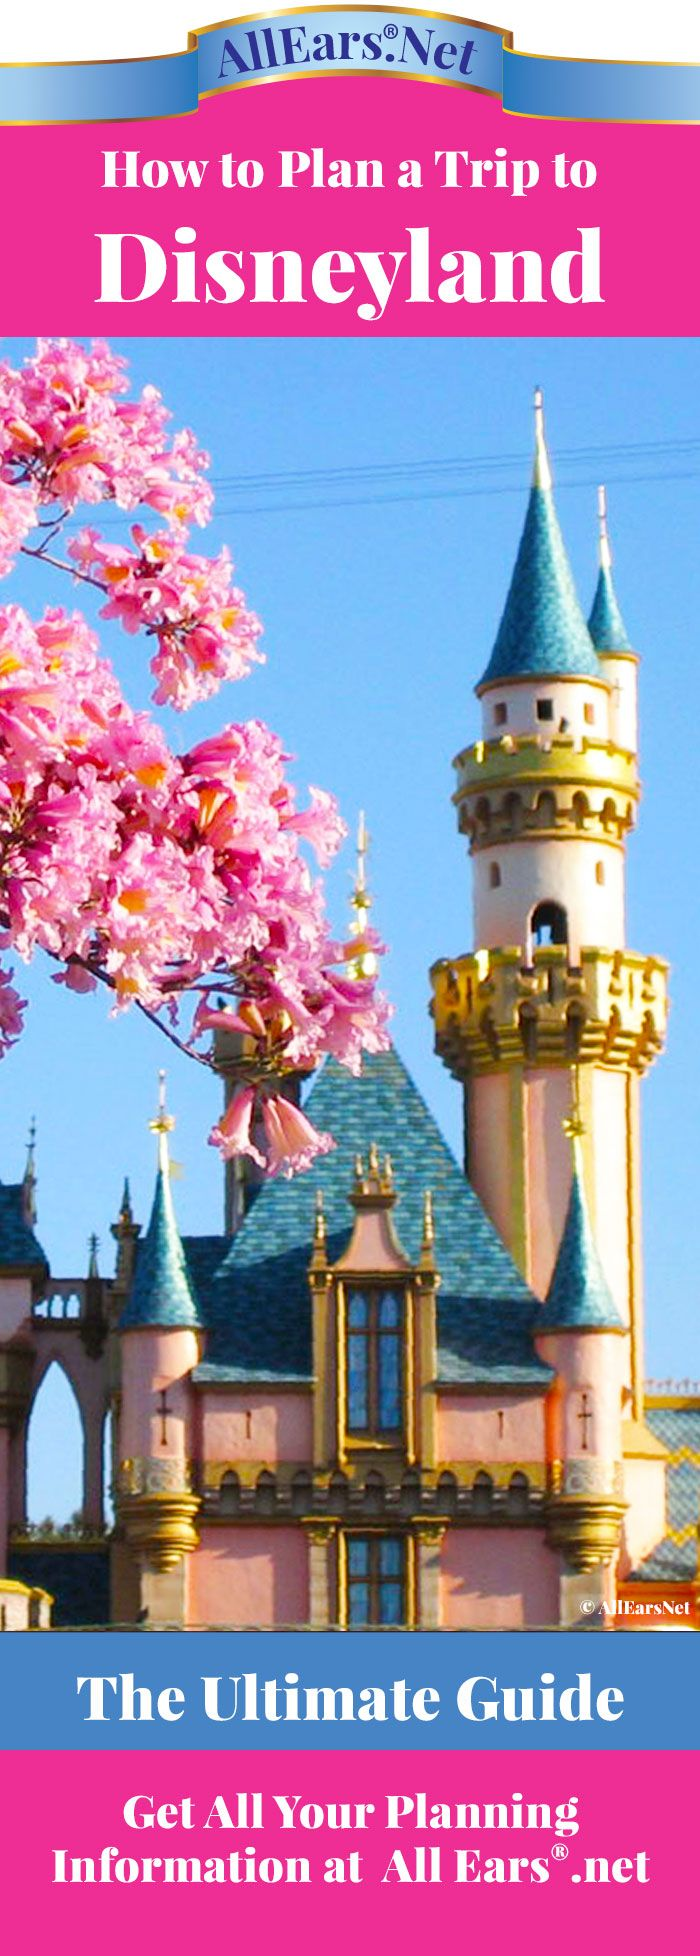 Your Disneyland Planning Guide | AllEars.net | AllEars.net